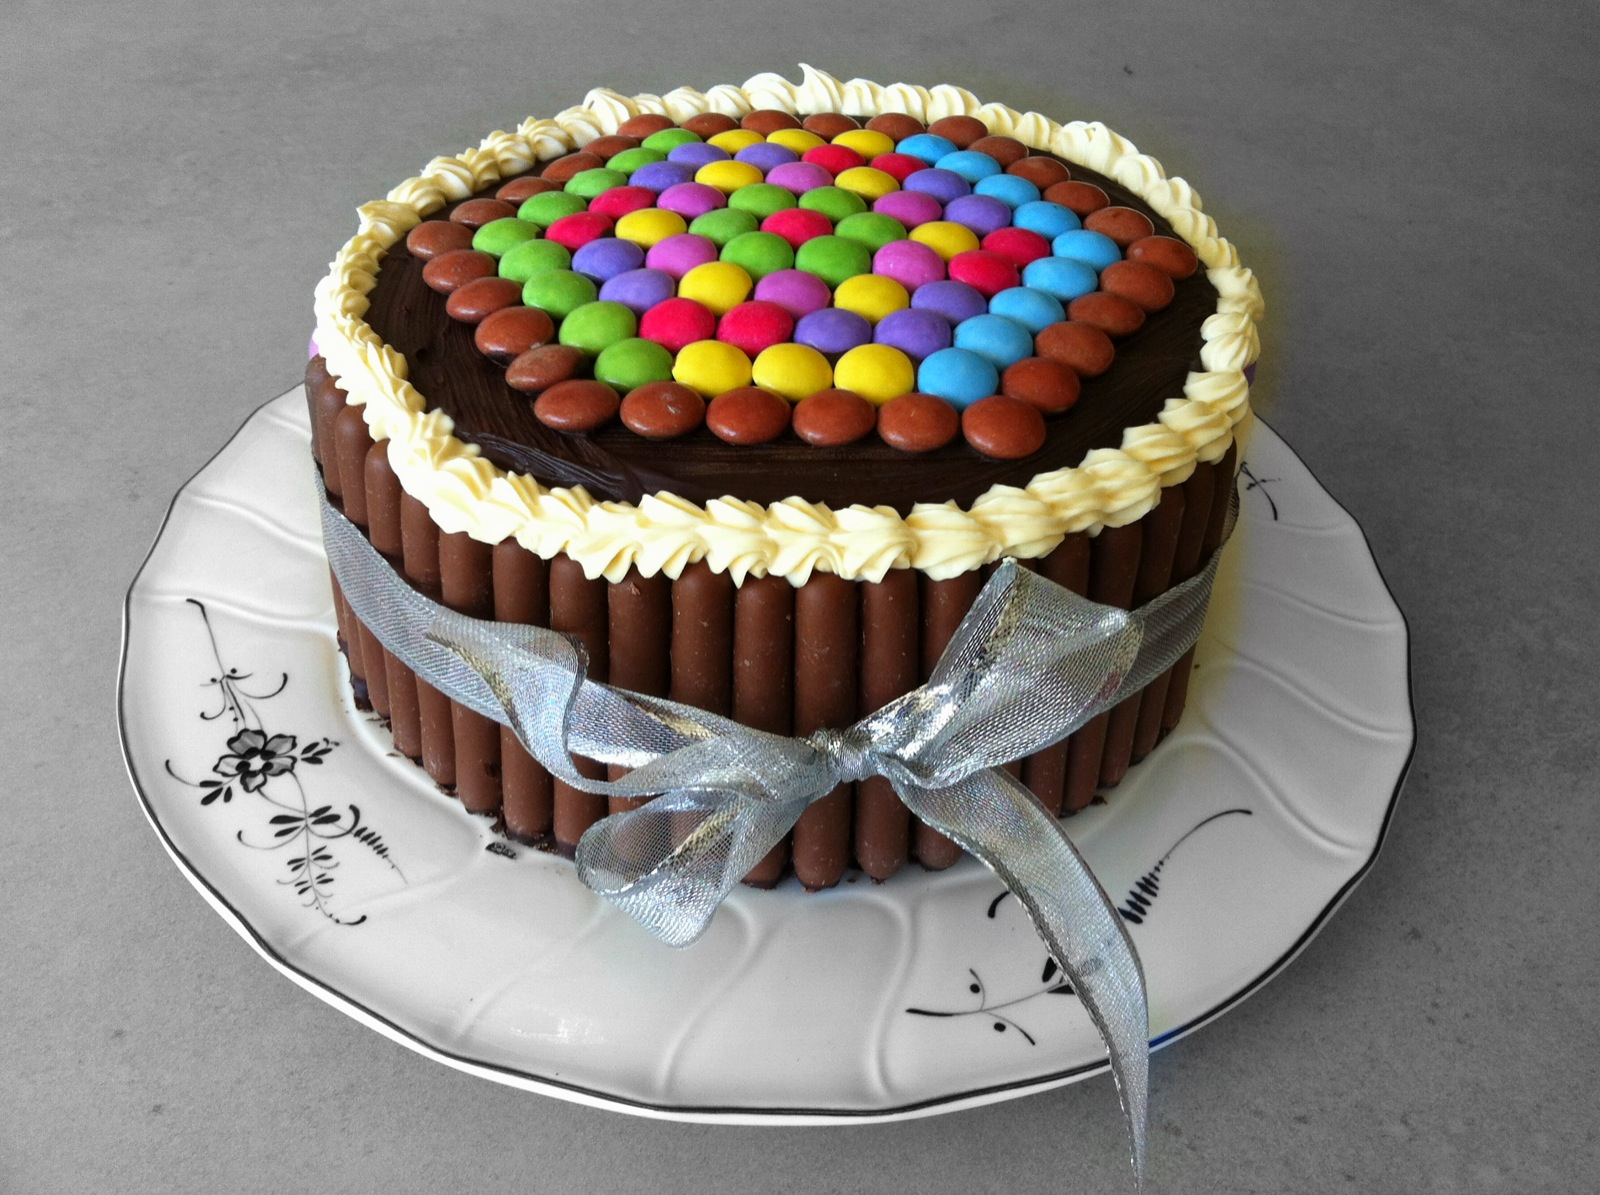 Idee Decoration Gateau Au Chocolat Decoration Gateau Chocolat Anniversaire Decoration For Home